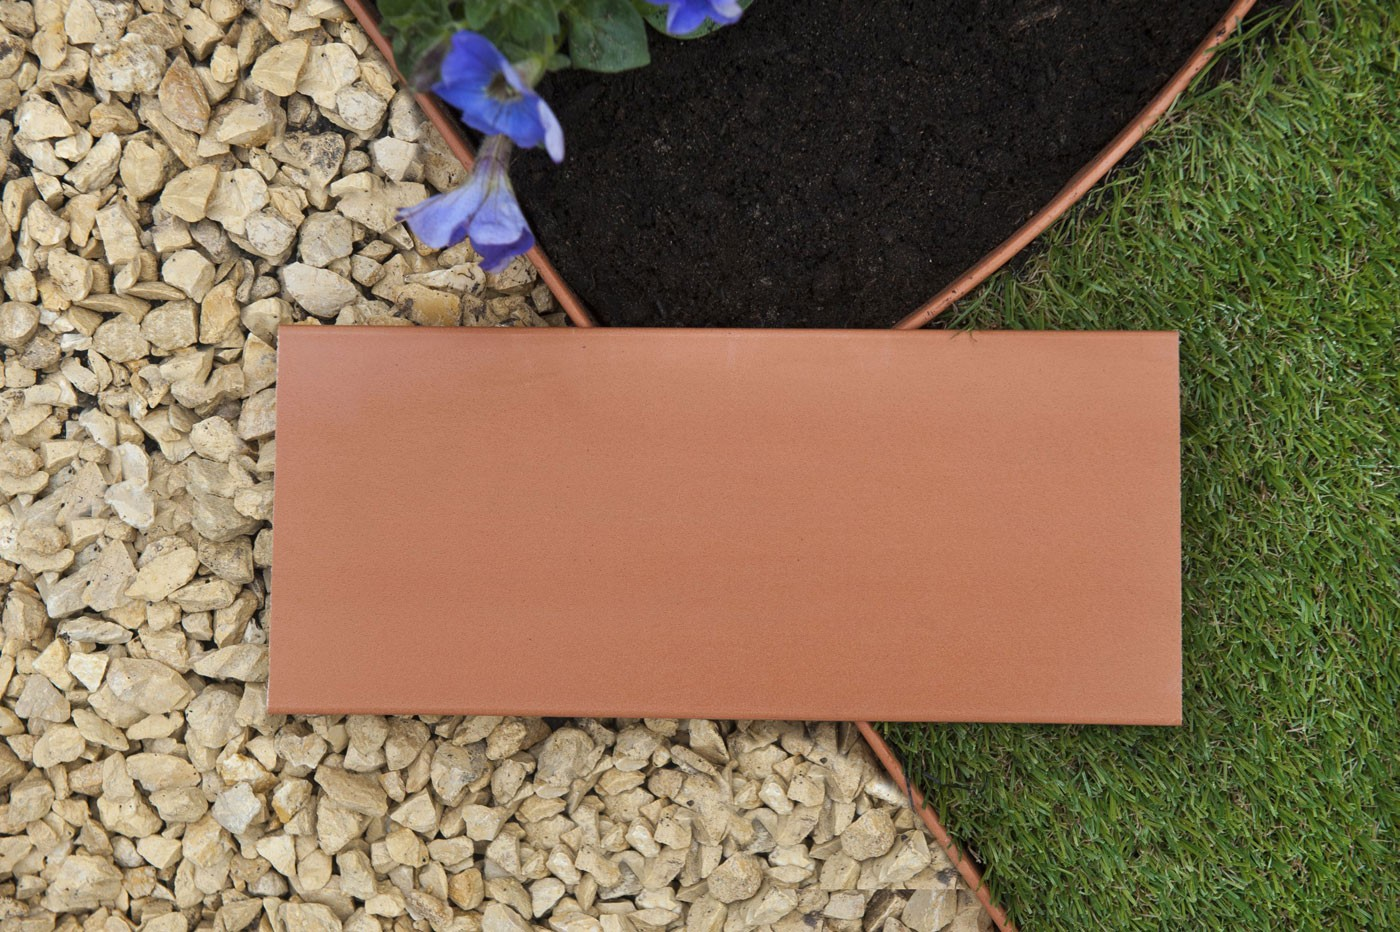 Bordure jardin plastique cm x 5 m terracotta for Bordure jardin plastique gris